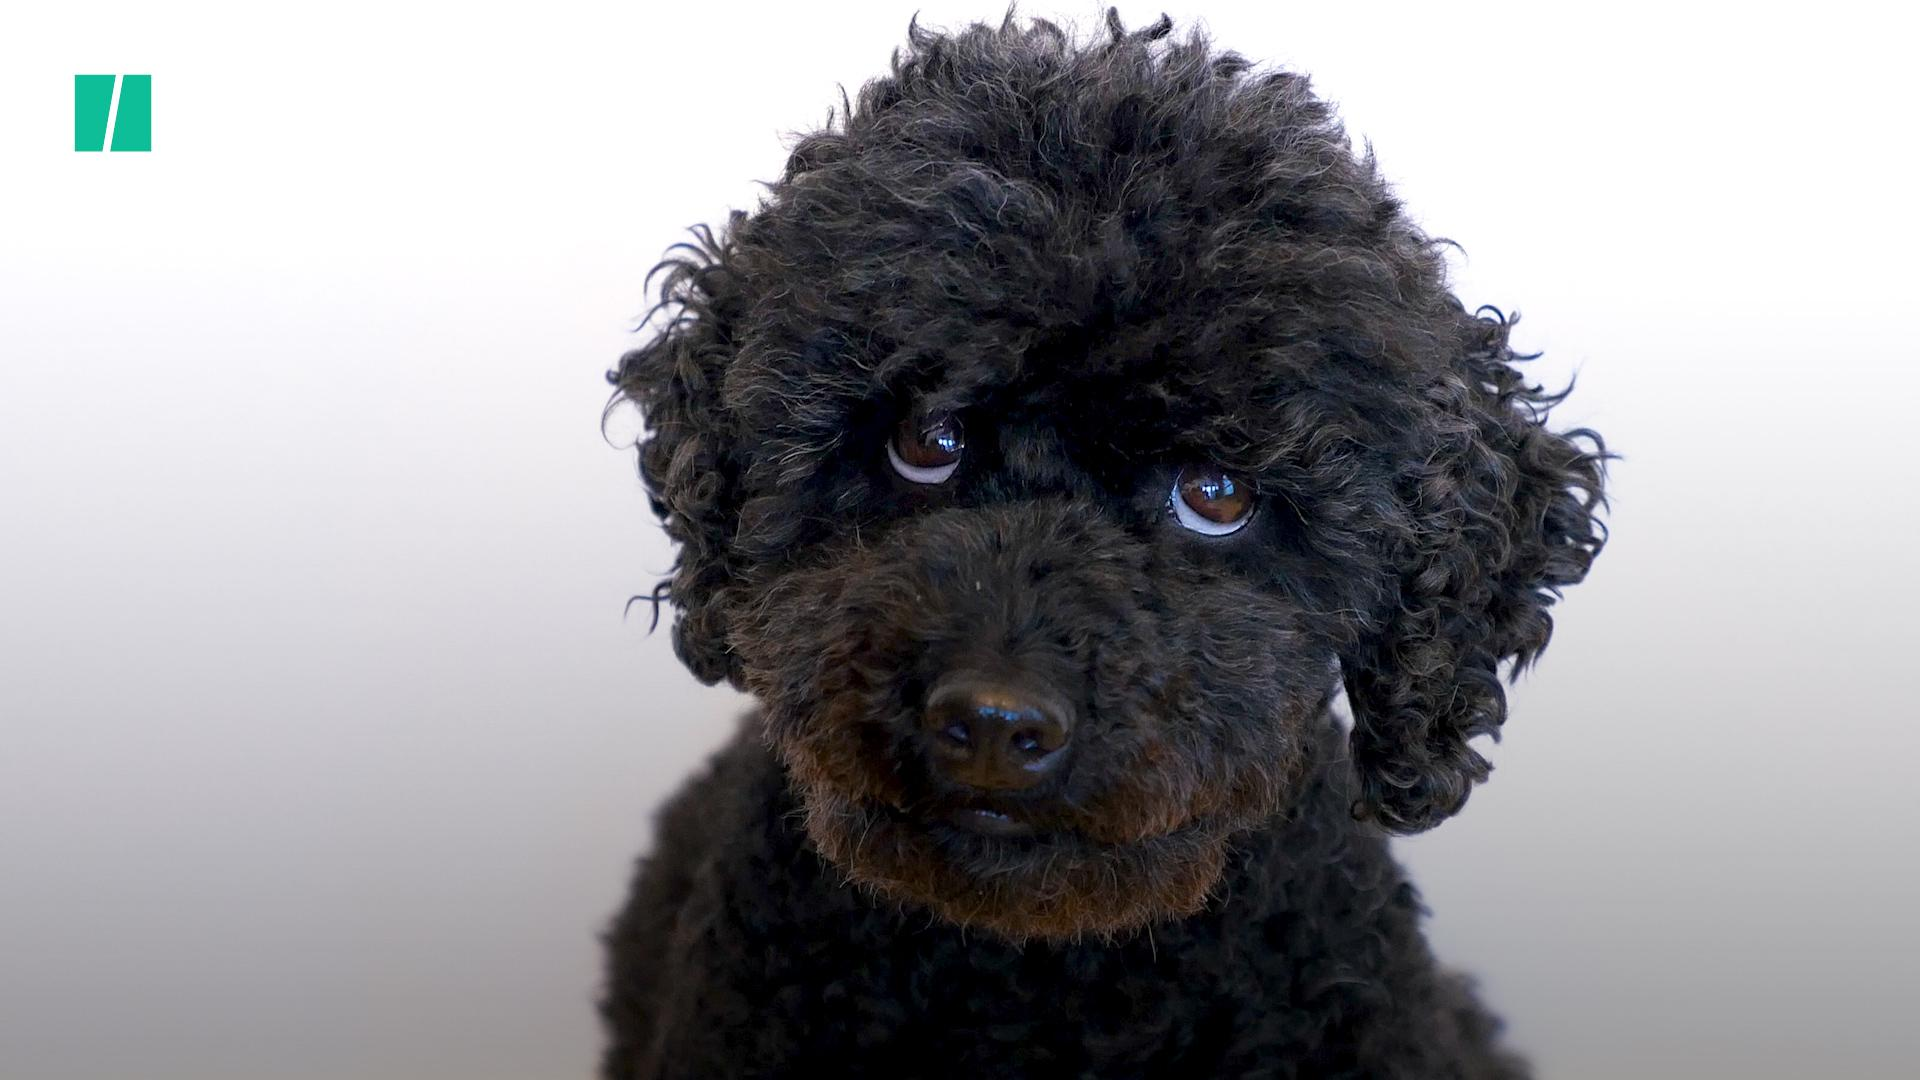 Puppy Dog Eyes Are A Real Thing, Say Scientists – As These 21 Adorable Pooches Show